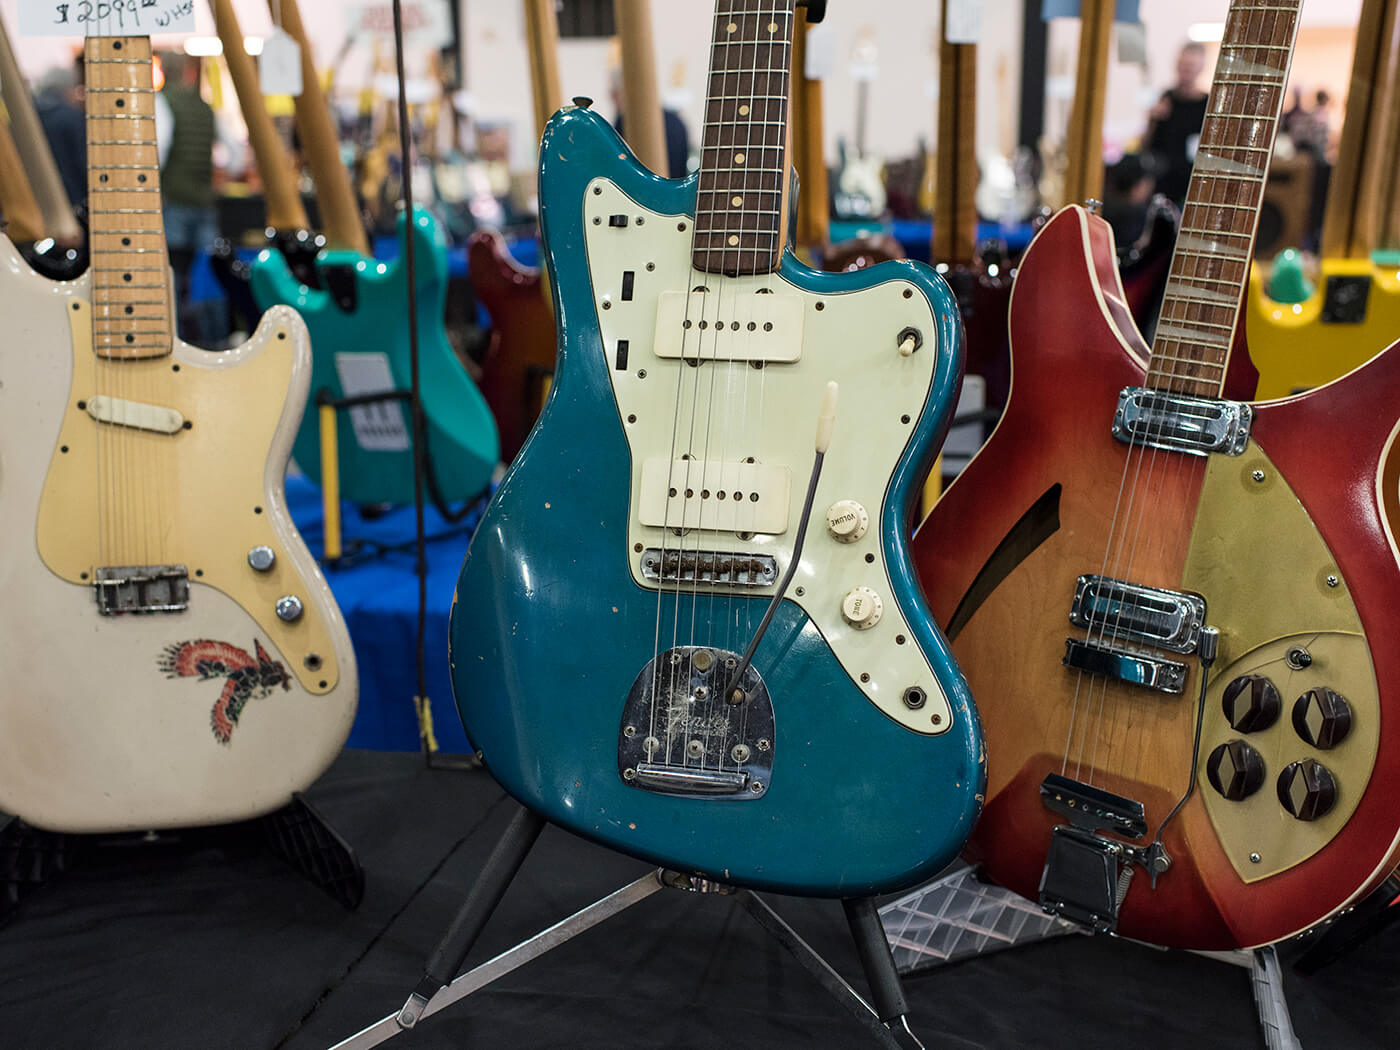 61 Jazzmaster in Lake Placid Blue with a wavy Brazilian fretboard and a patent number vibrato